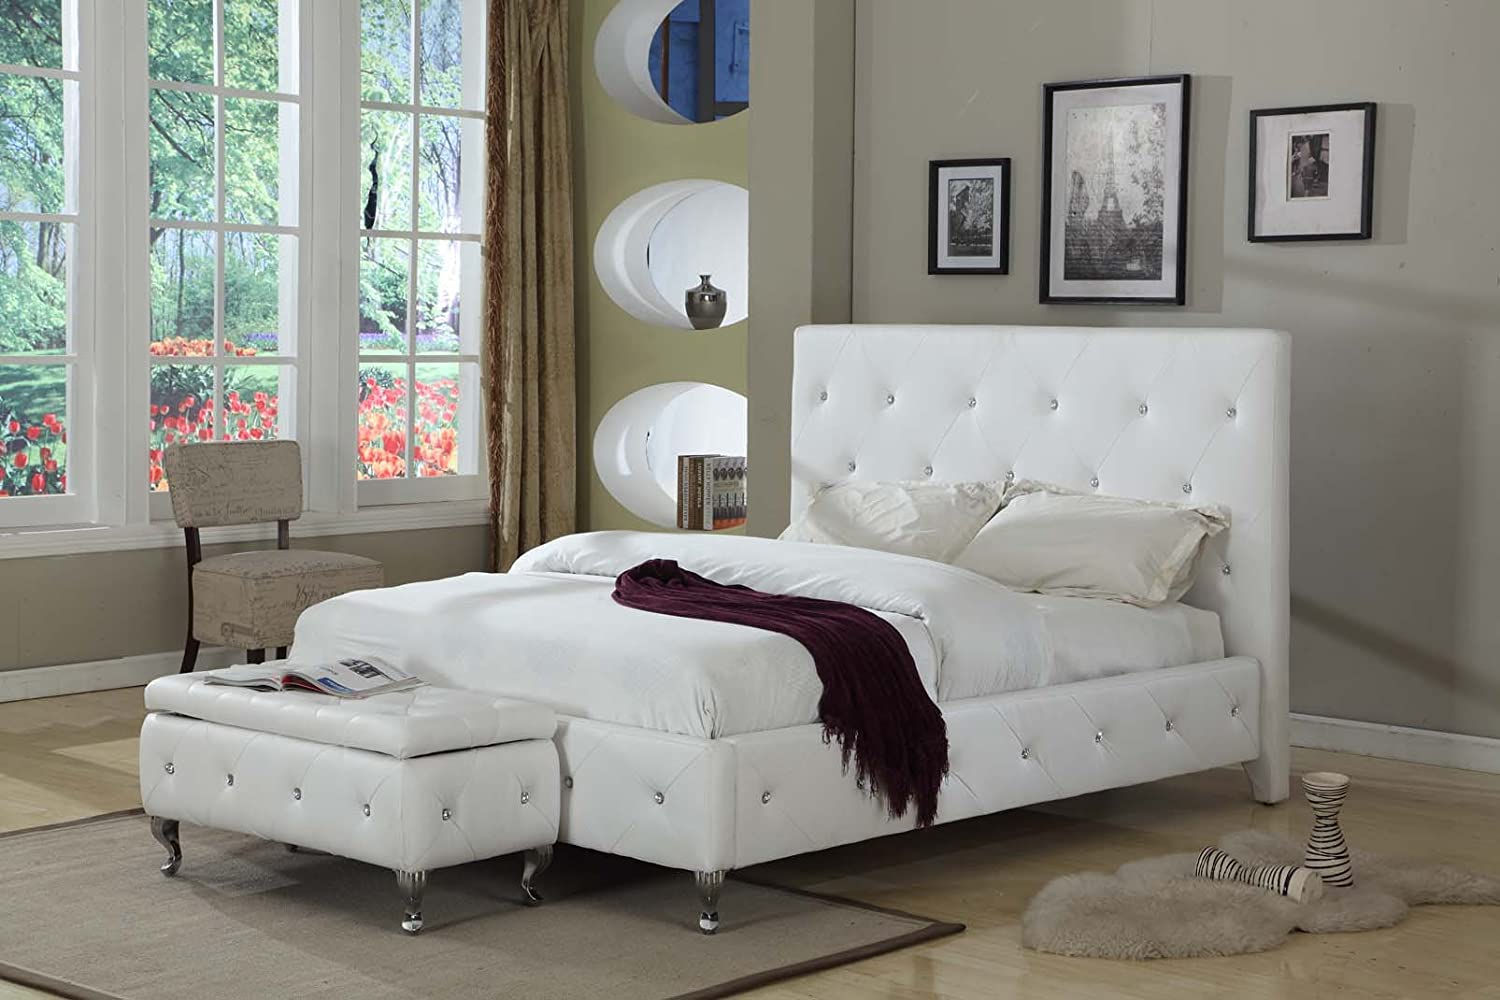 medium bed platform image dorado tufted basel el furniture dias queen images white alternate of